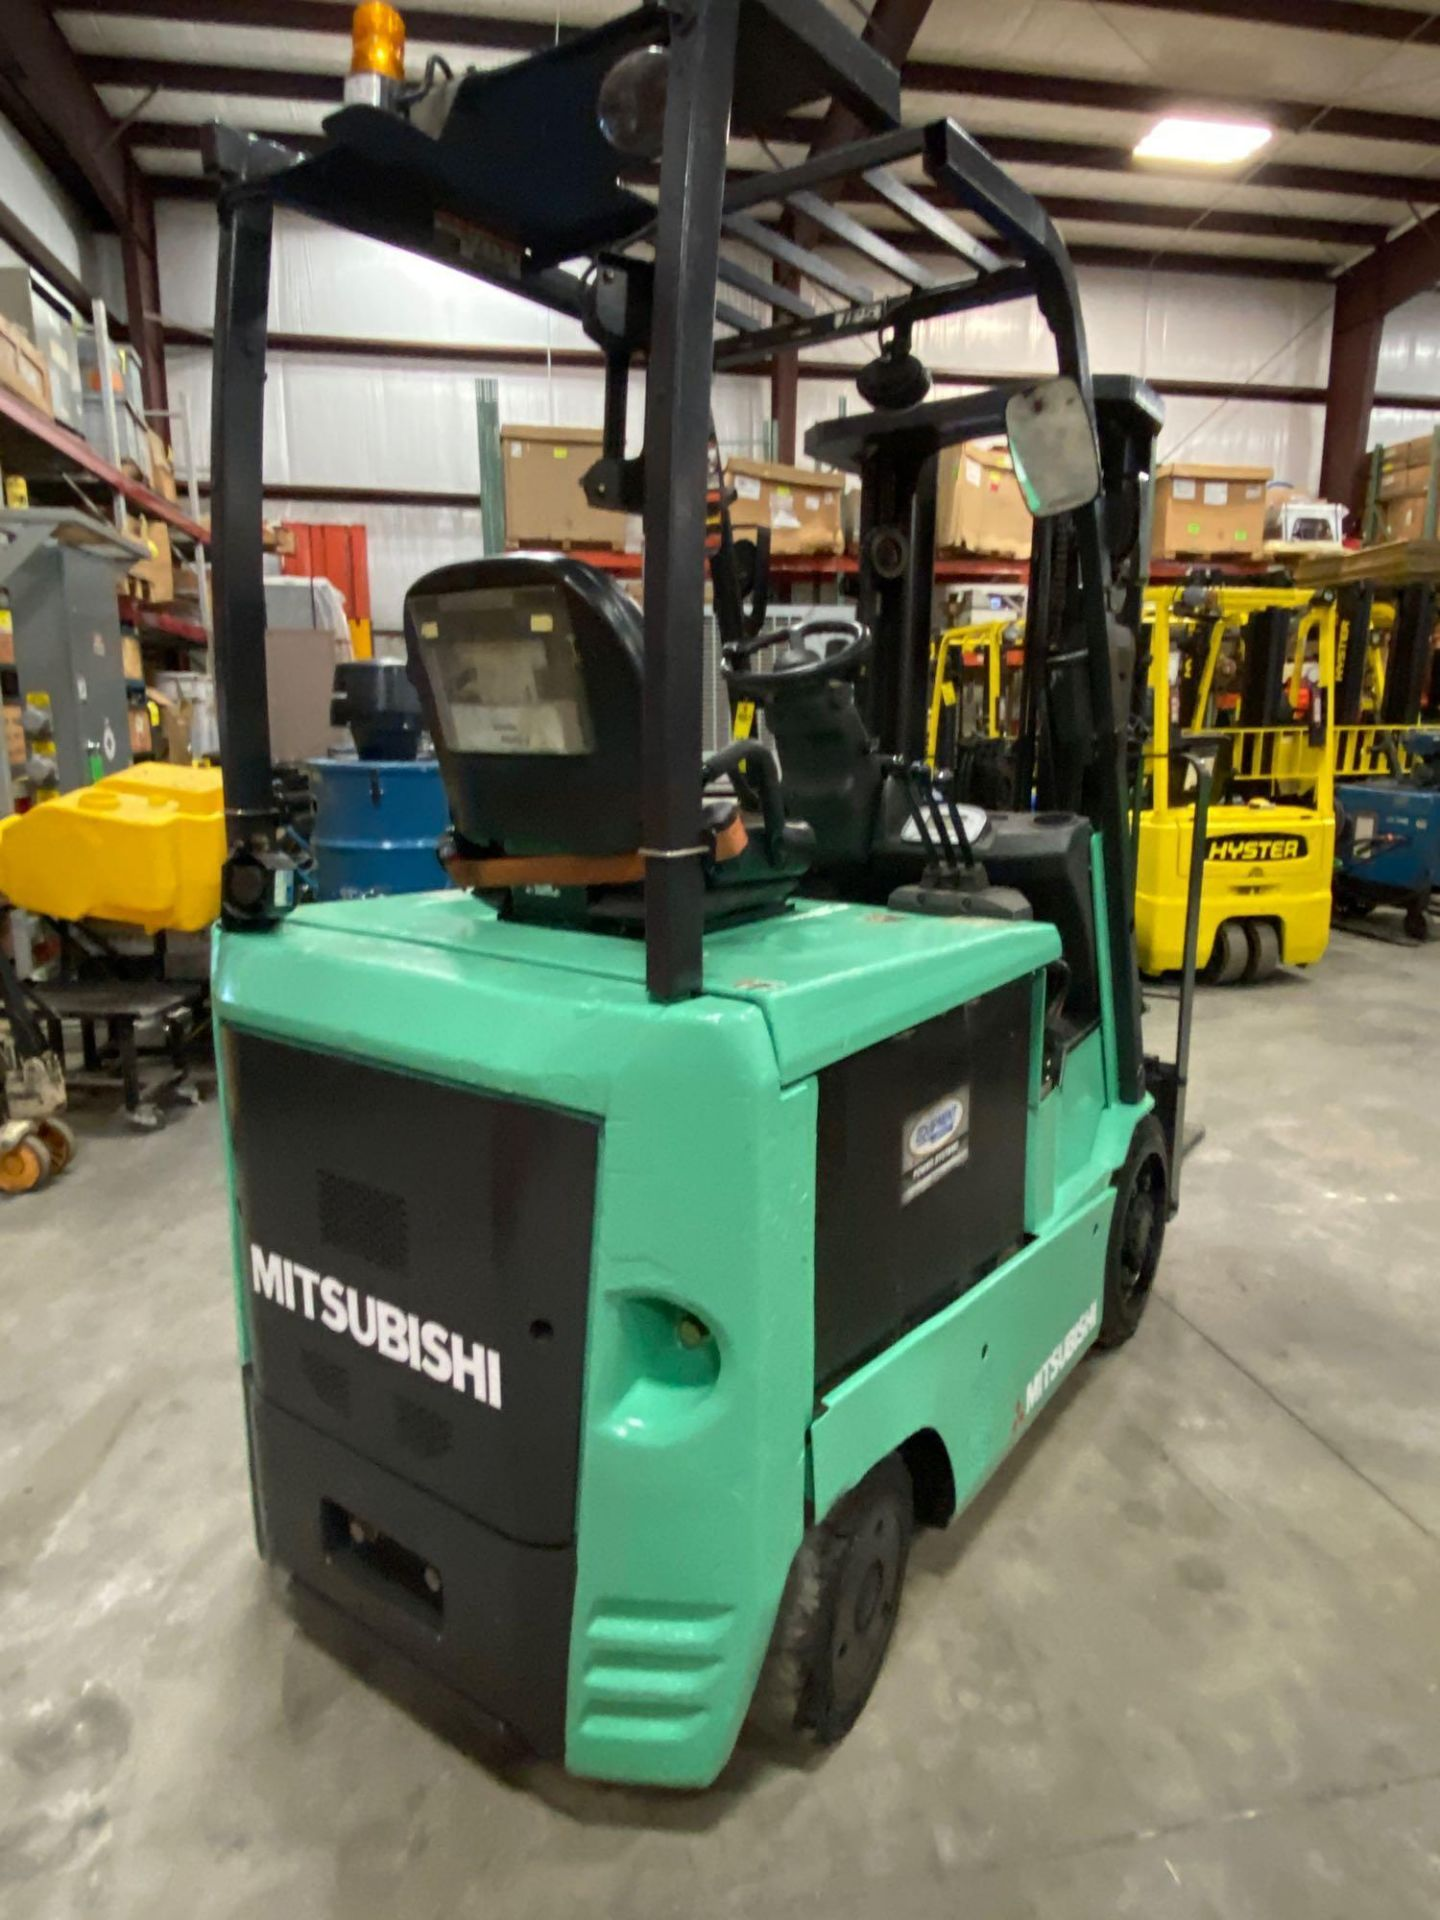 "2015 MITSUBISHI FBC25N2 36V FORKLIFT, APPROX 4500LB CAPACITY, TILT, SIDESHIFT, LIFT 188"" MAX HEIGHT, - Image 6 of 20"